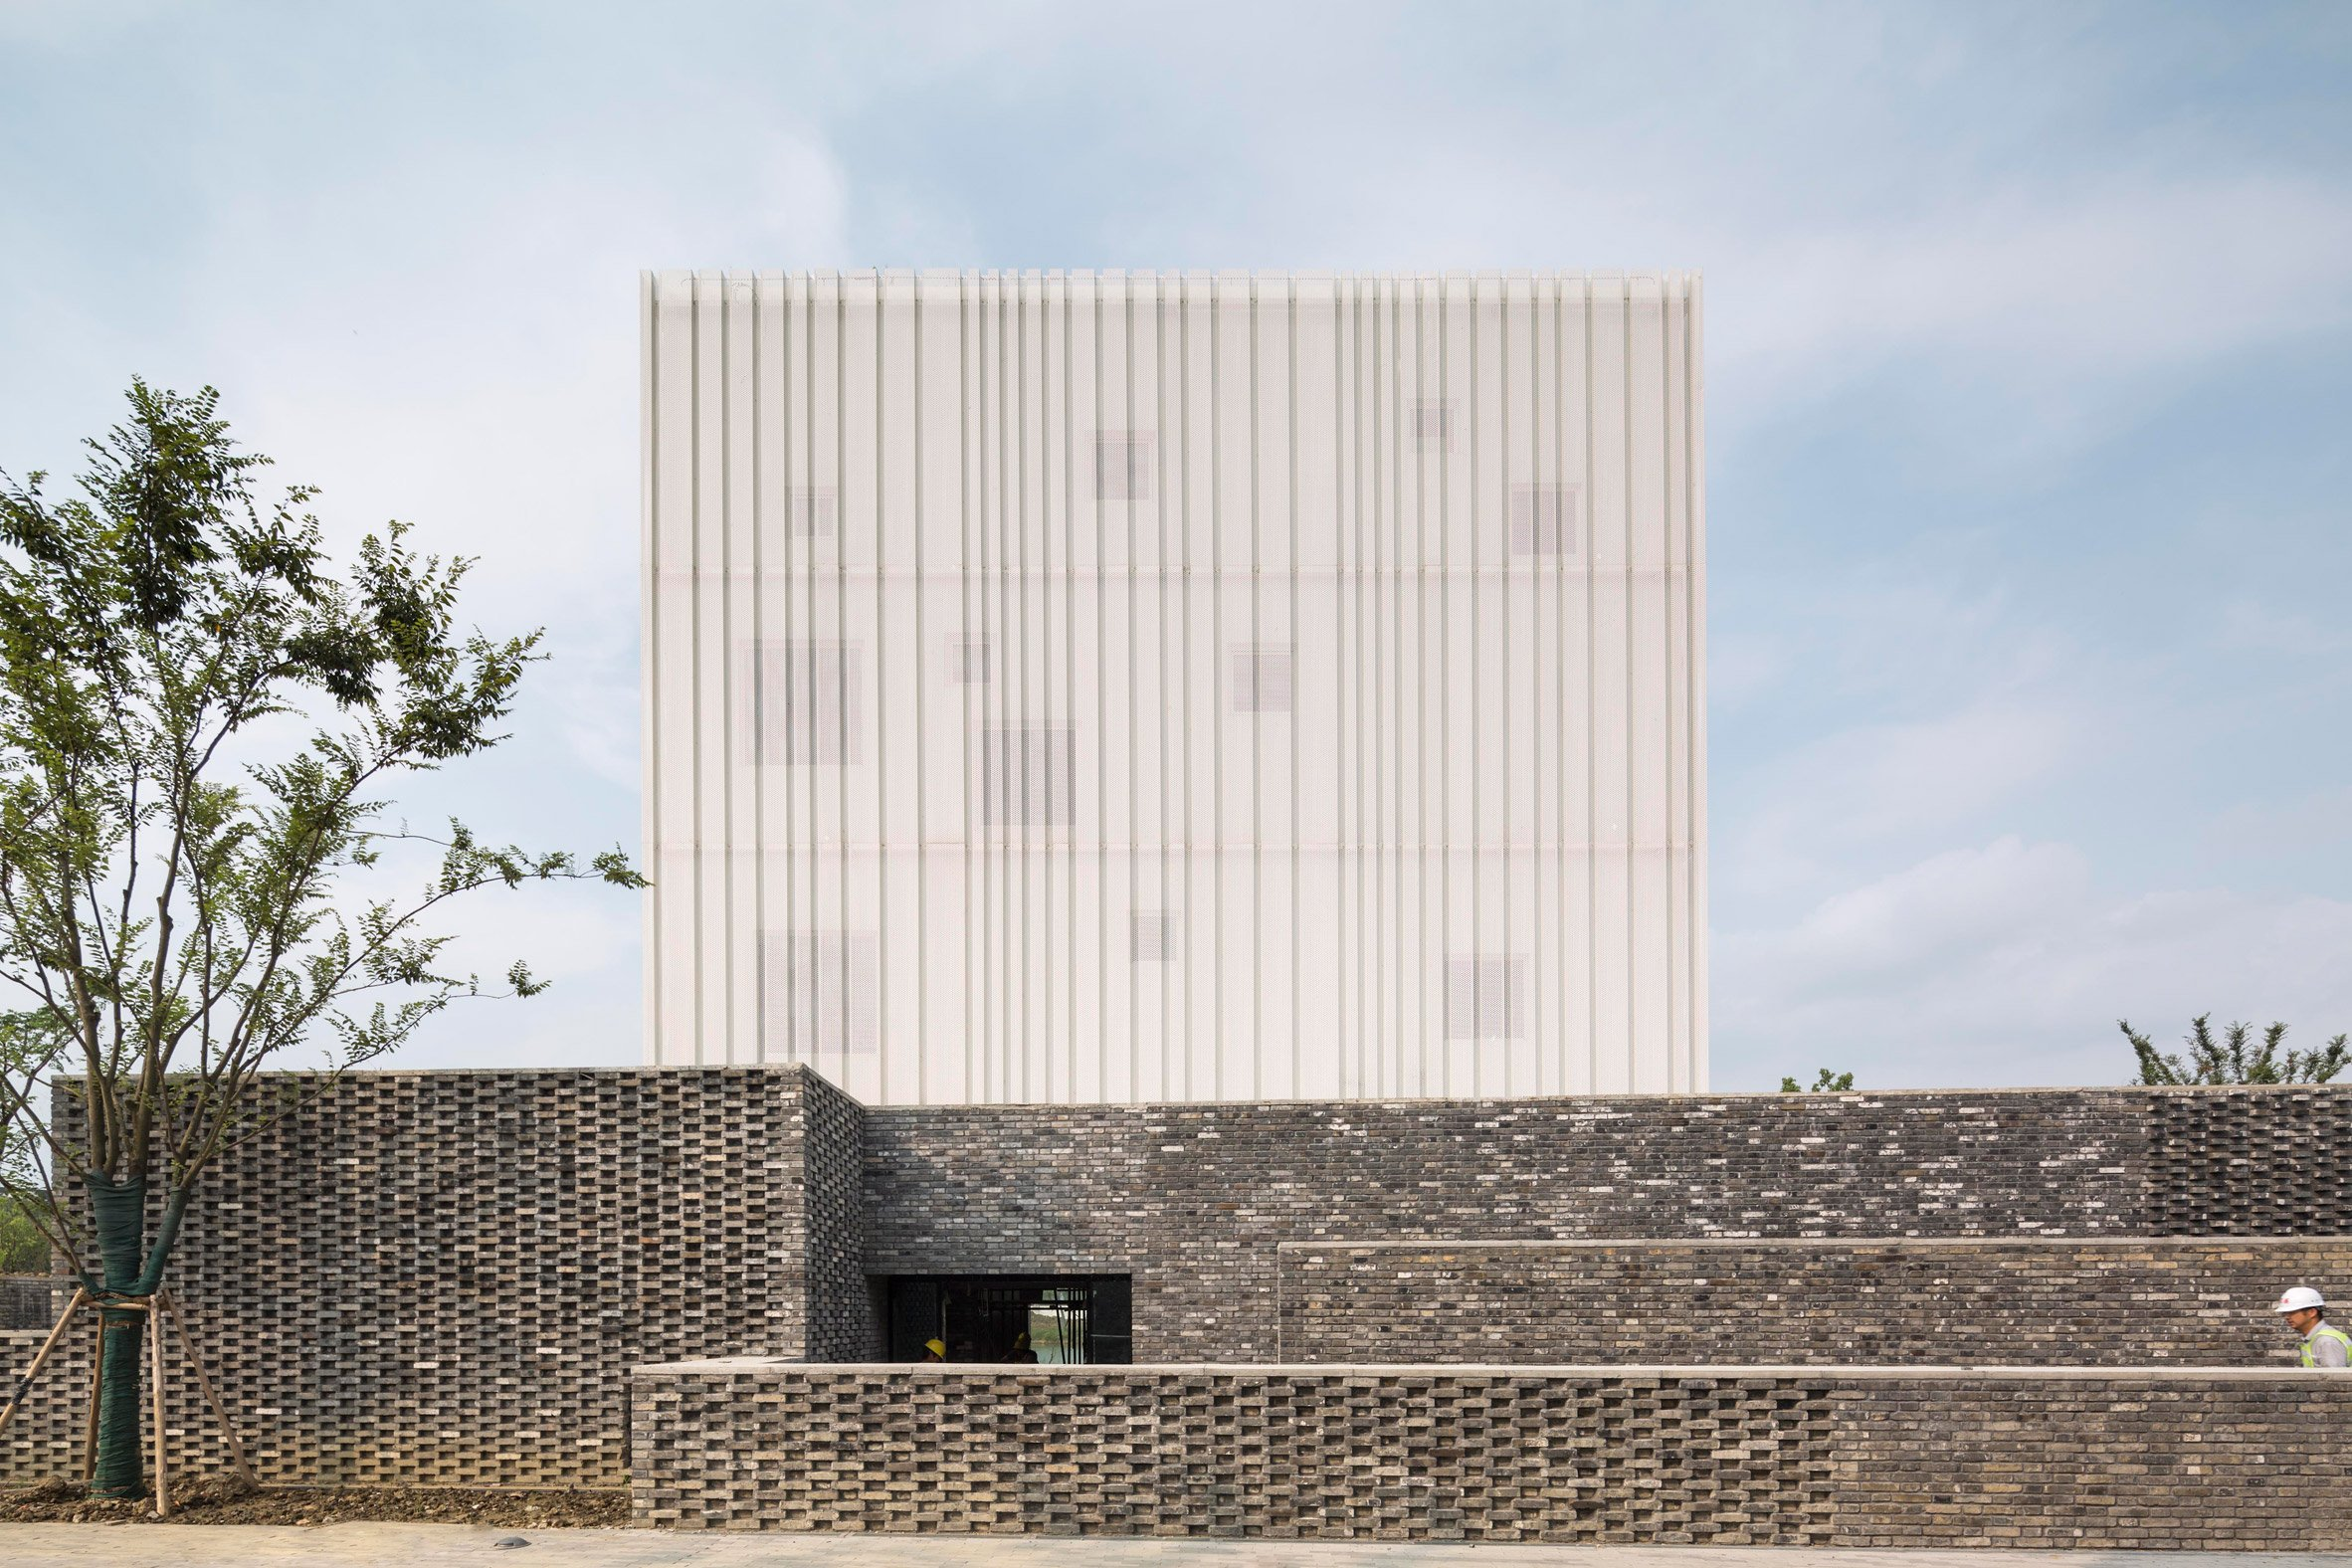 Neri&Hu's Suzhou Chapel combines textured brick base with ethereal white cube